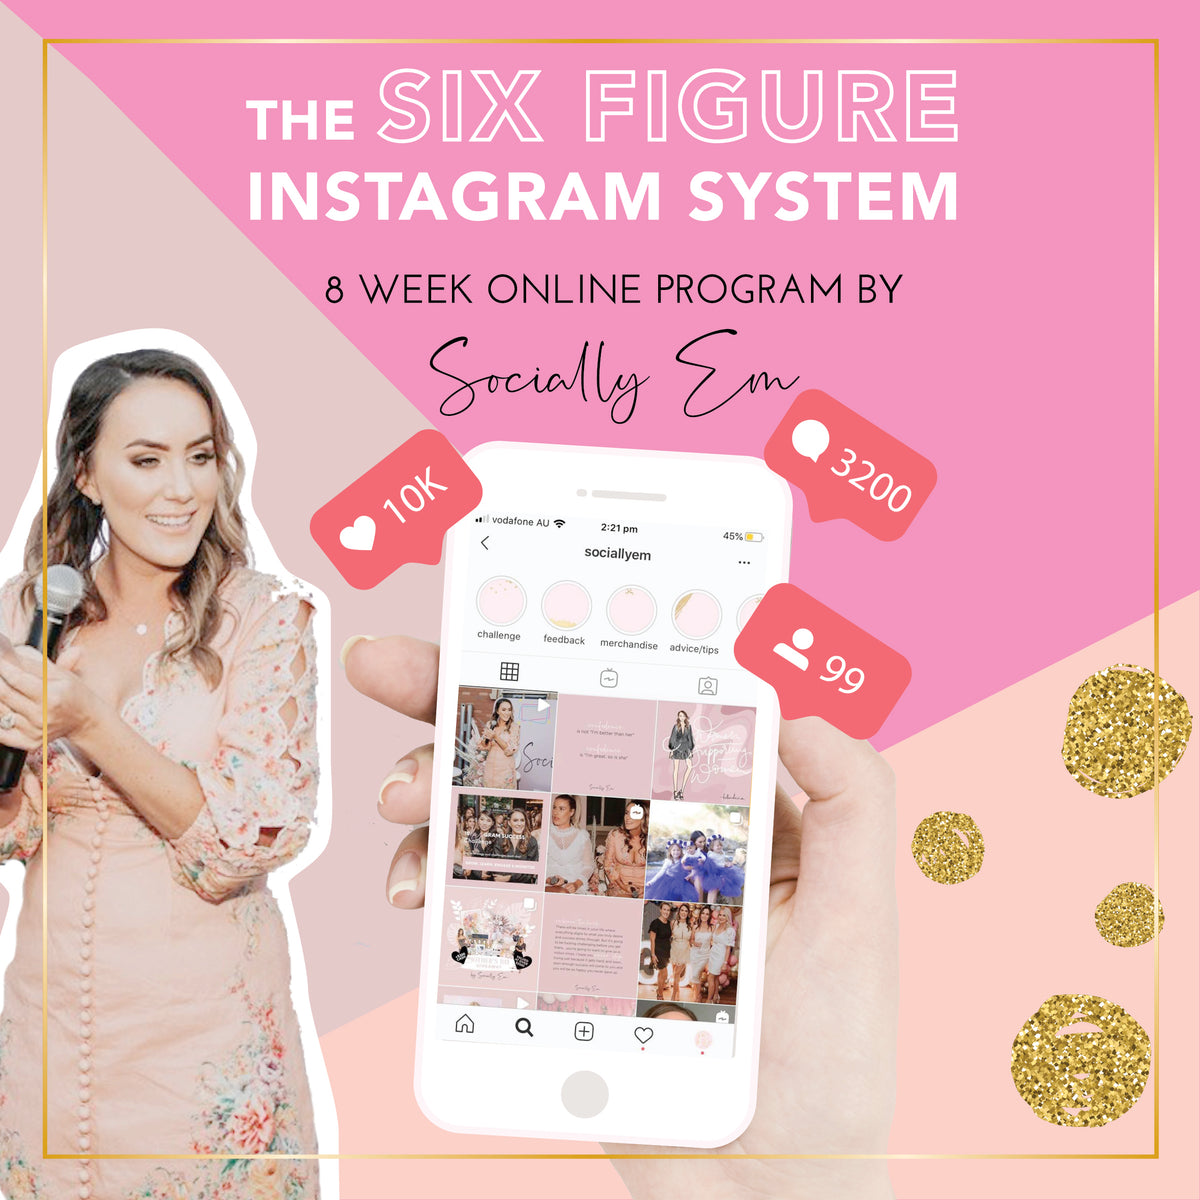 The Six Figure Instagram System Course